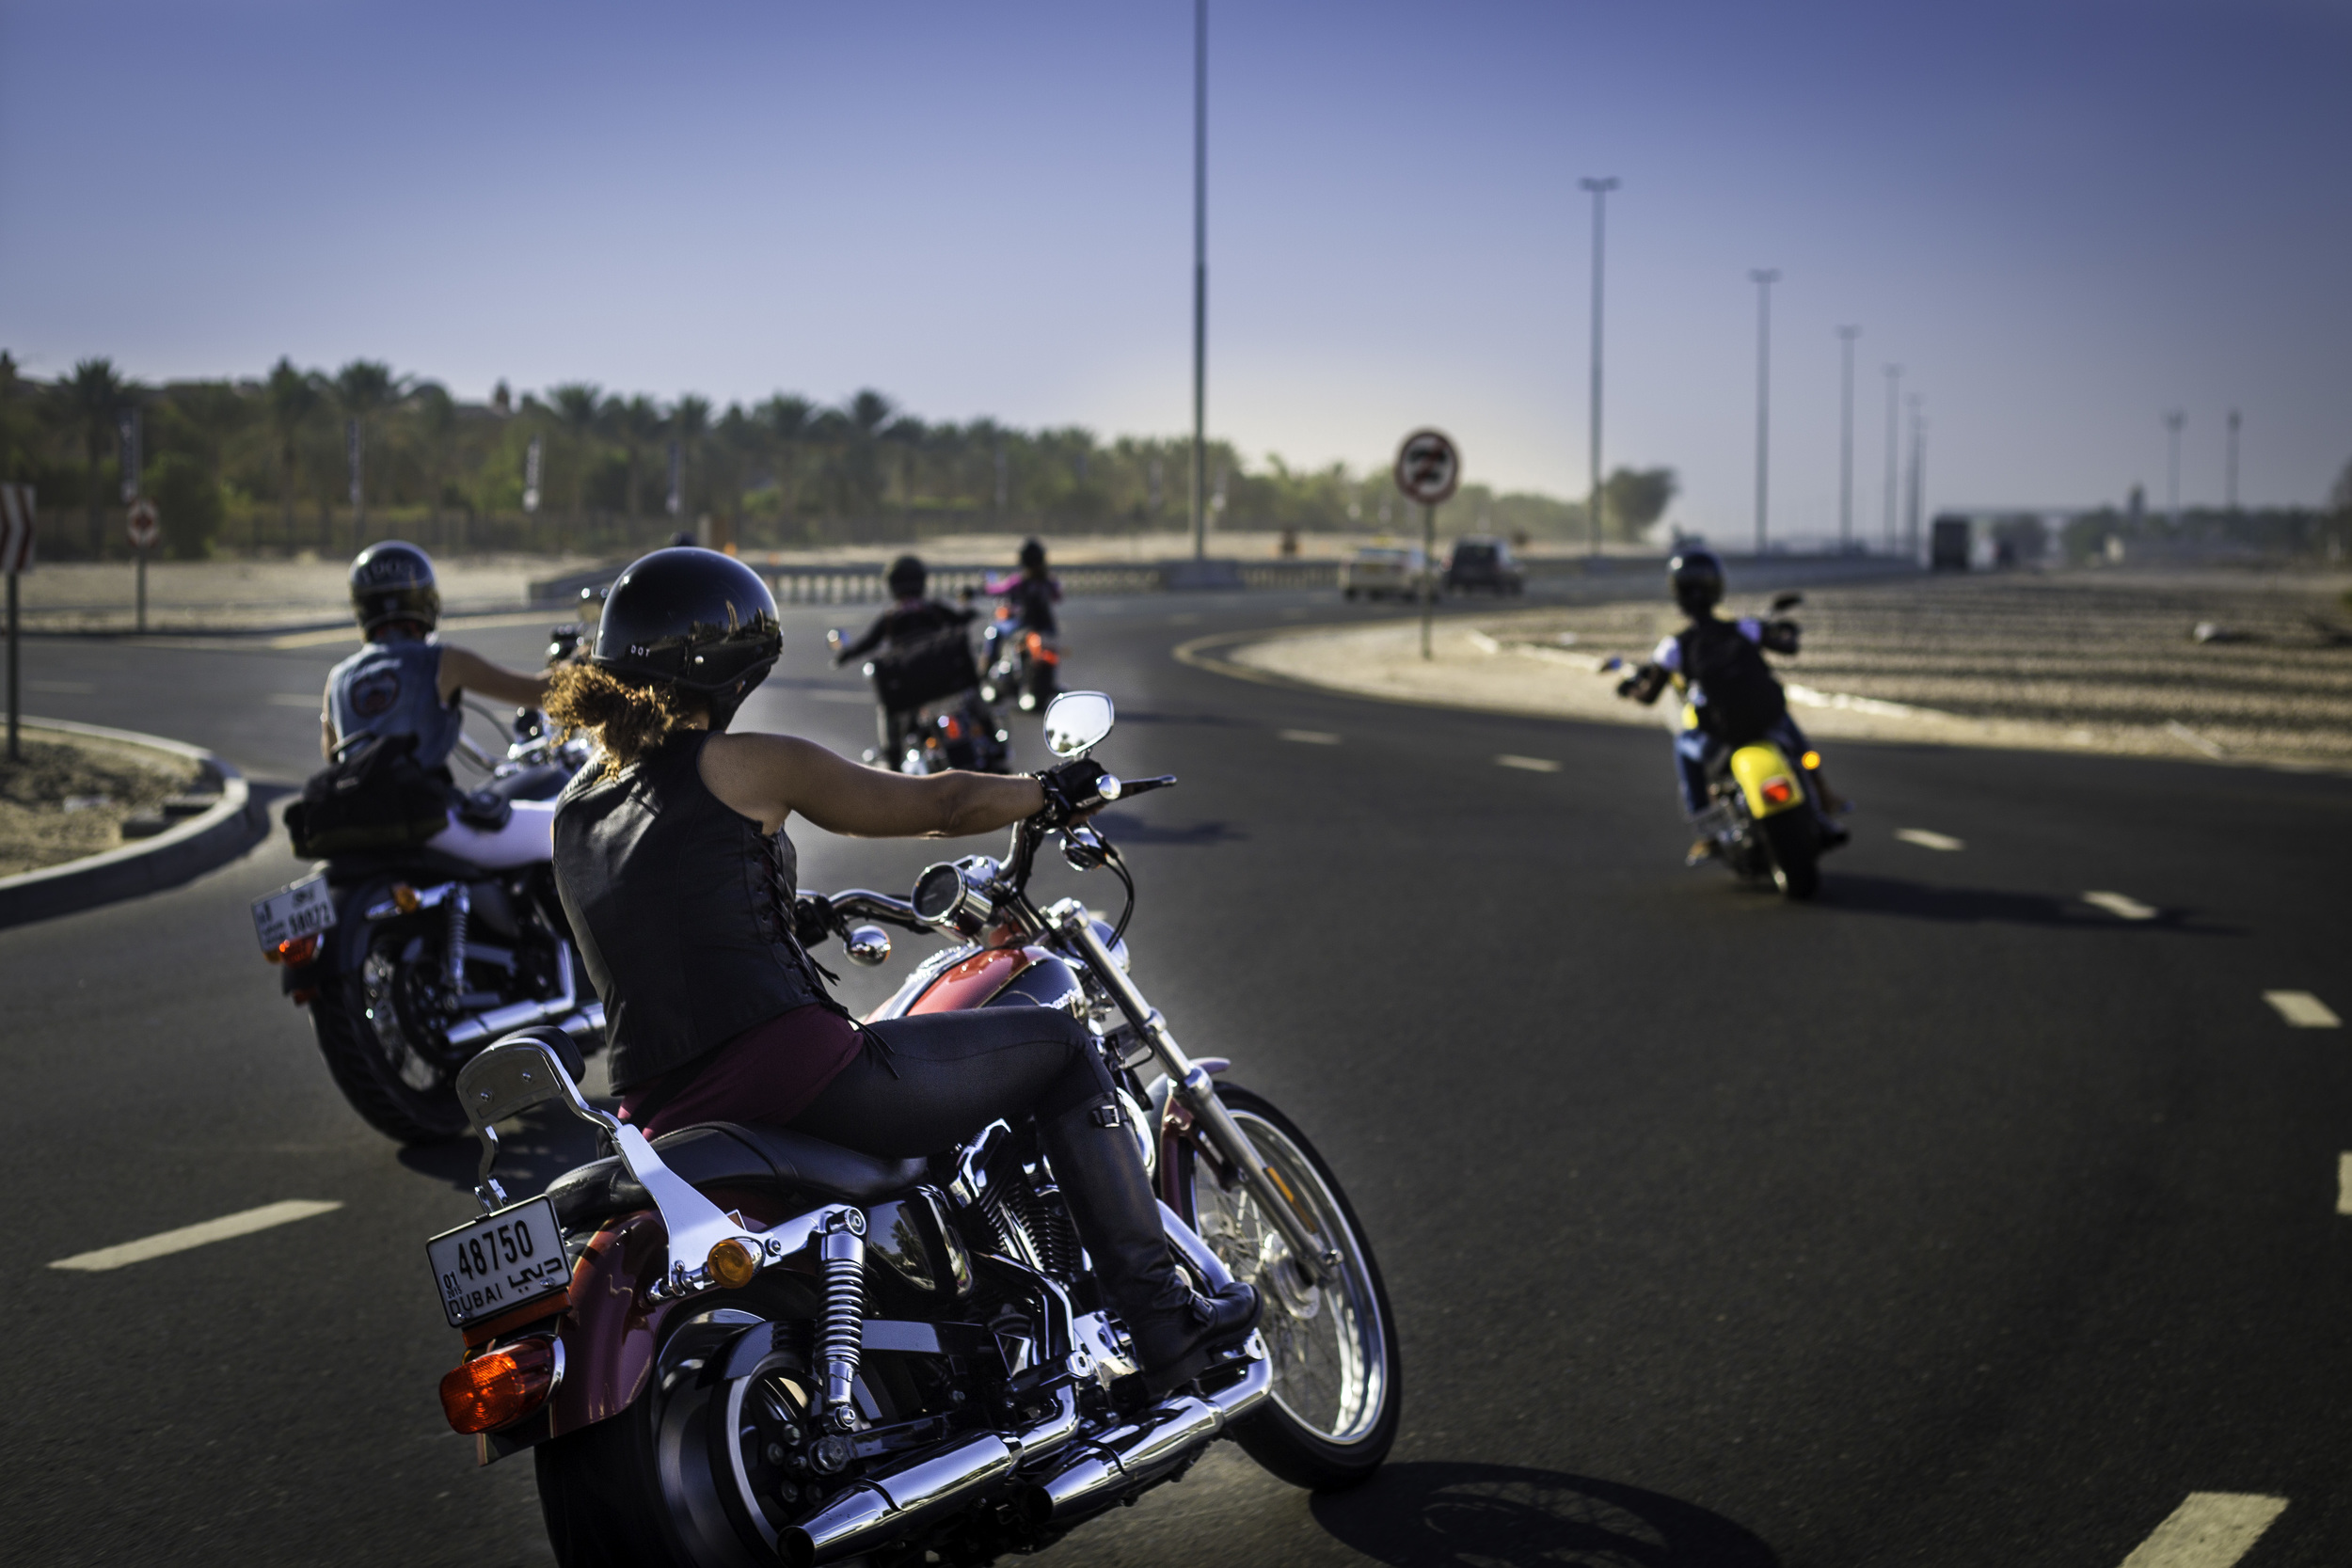 Dubai Ladies of Harley riders riding back to Dubai after marking International Female Ride Day (3)-2.jpg